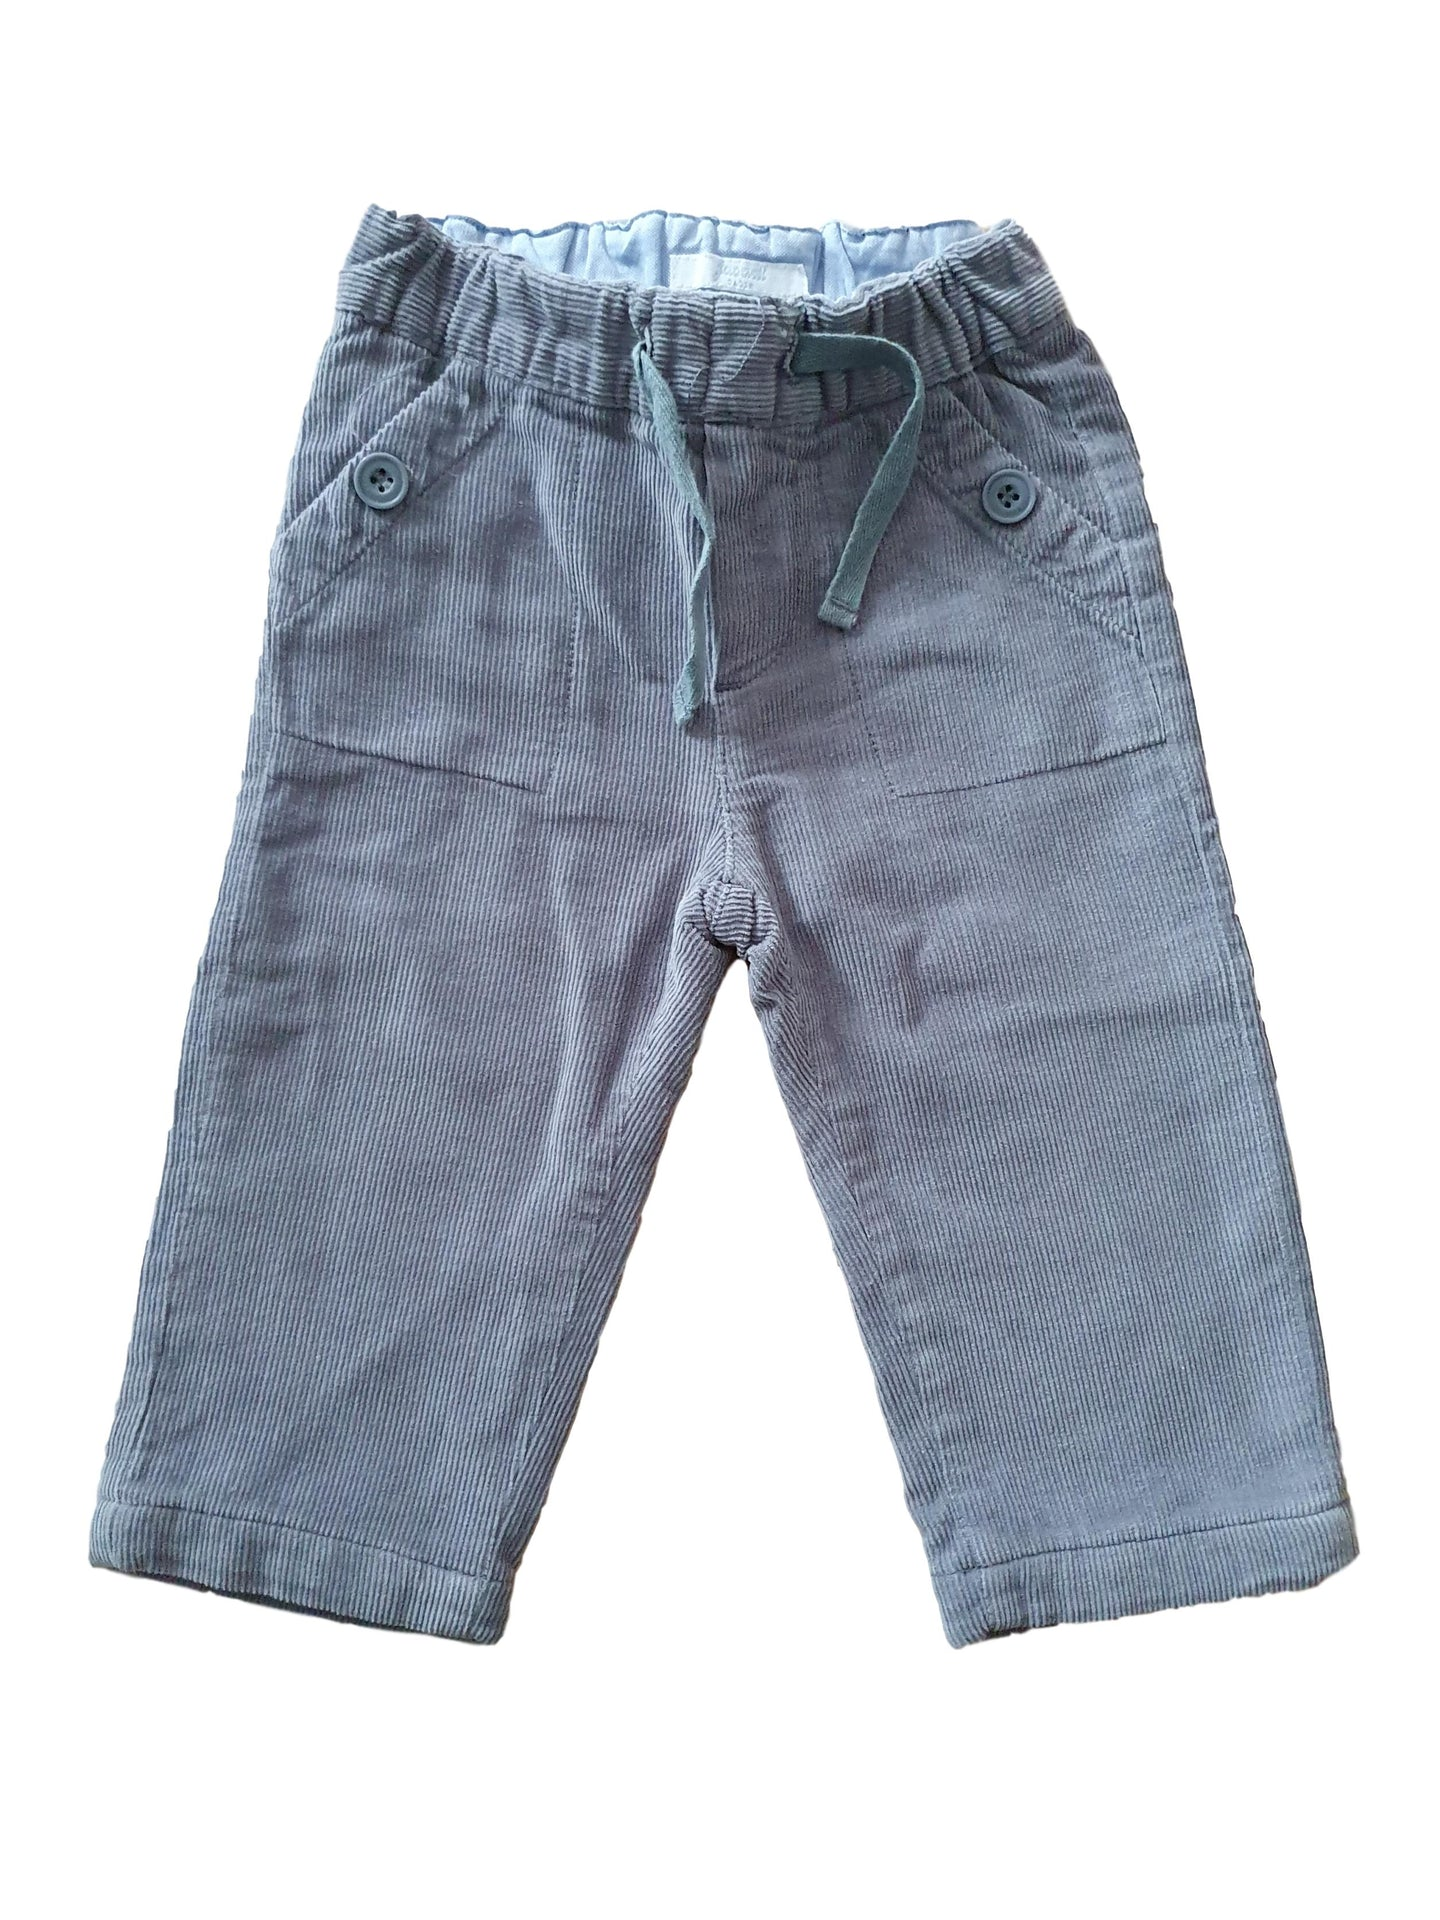 JACADI boy or girl trousers 12m